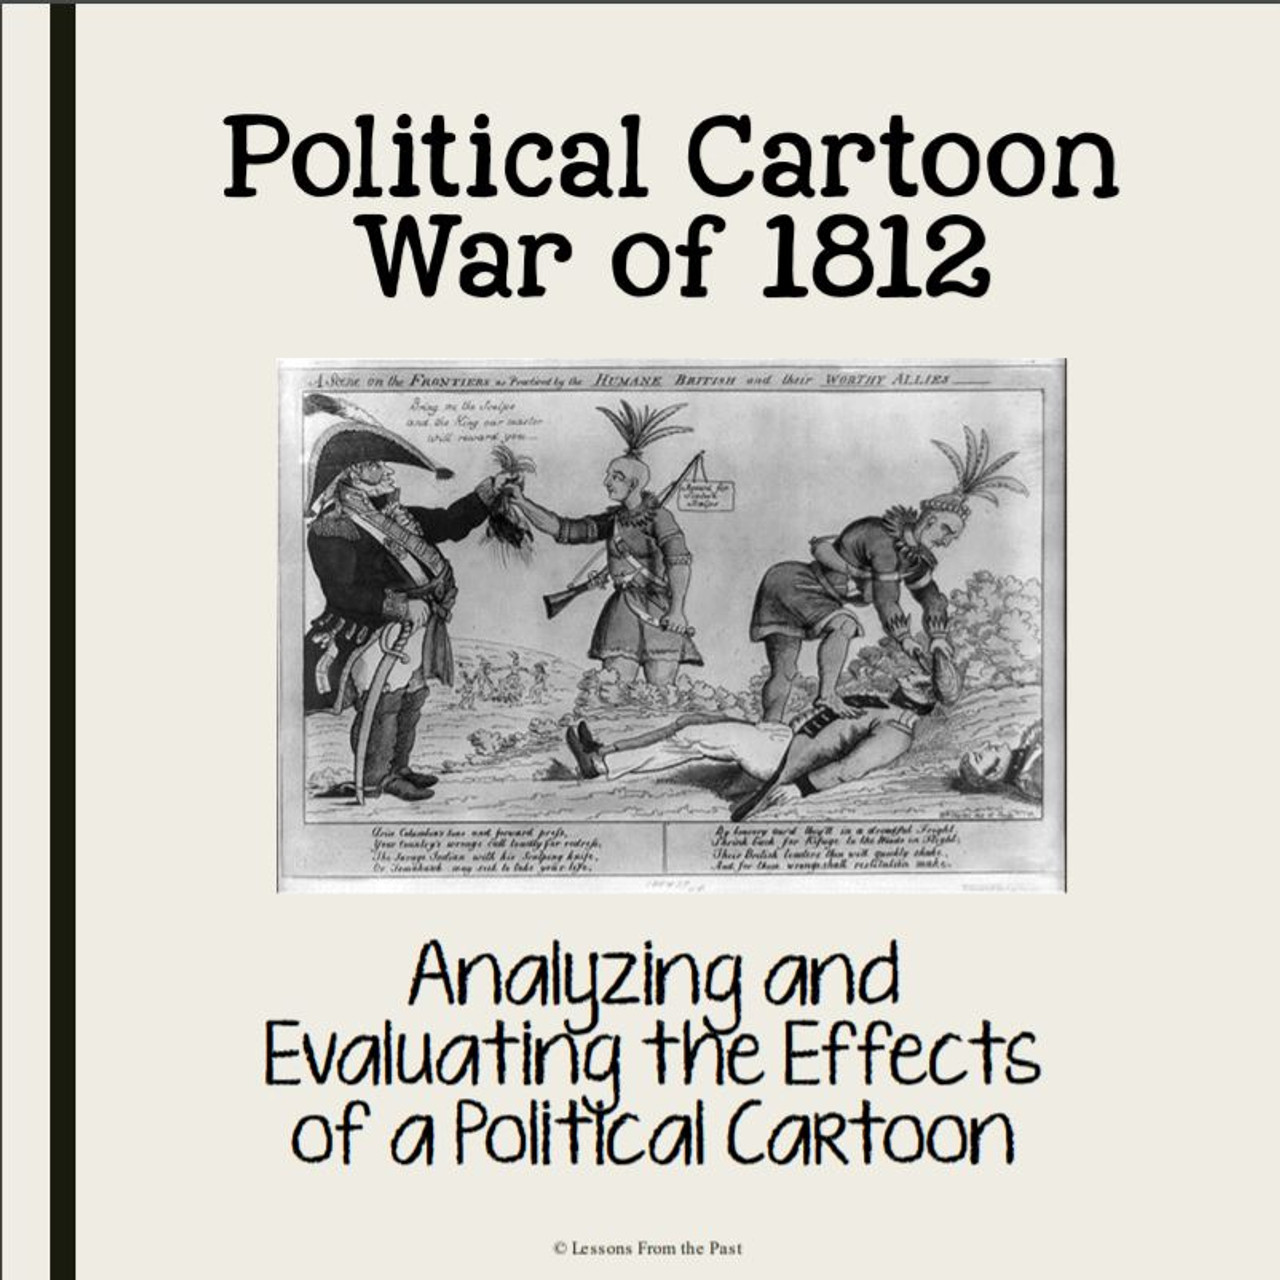 hight resolution of Political Cartoon War of 1812-Were British Actions Humane? - Amped Up  Learning